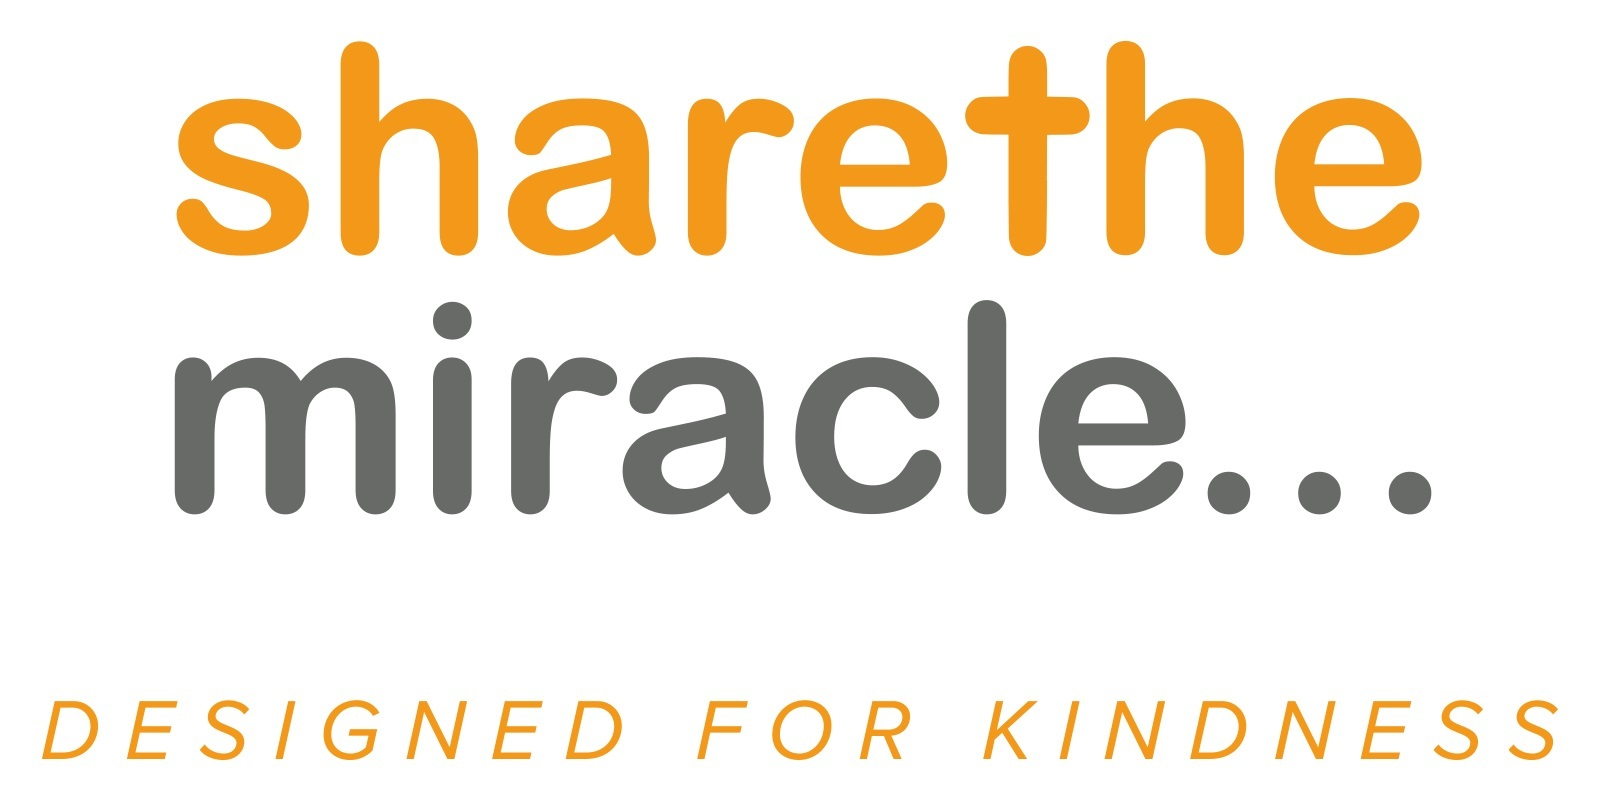 Share the miracle designed for kindness